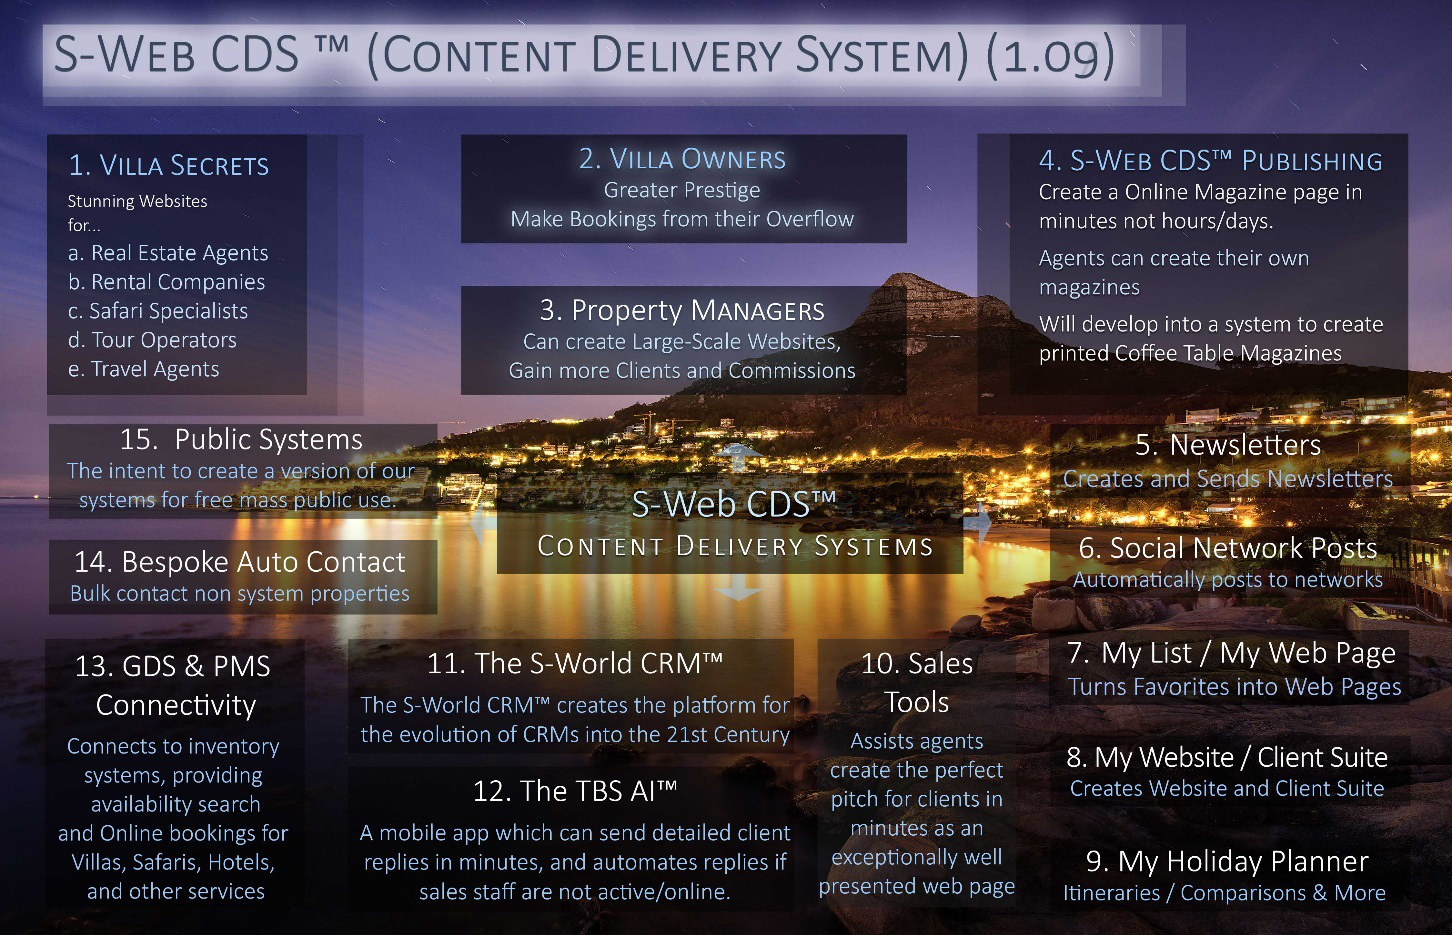 S-Web CDS-Content Delivery System